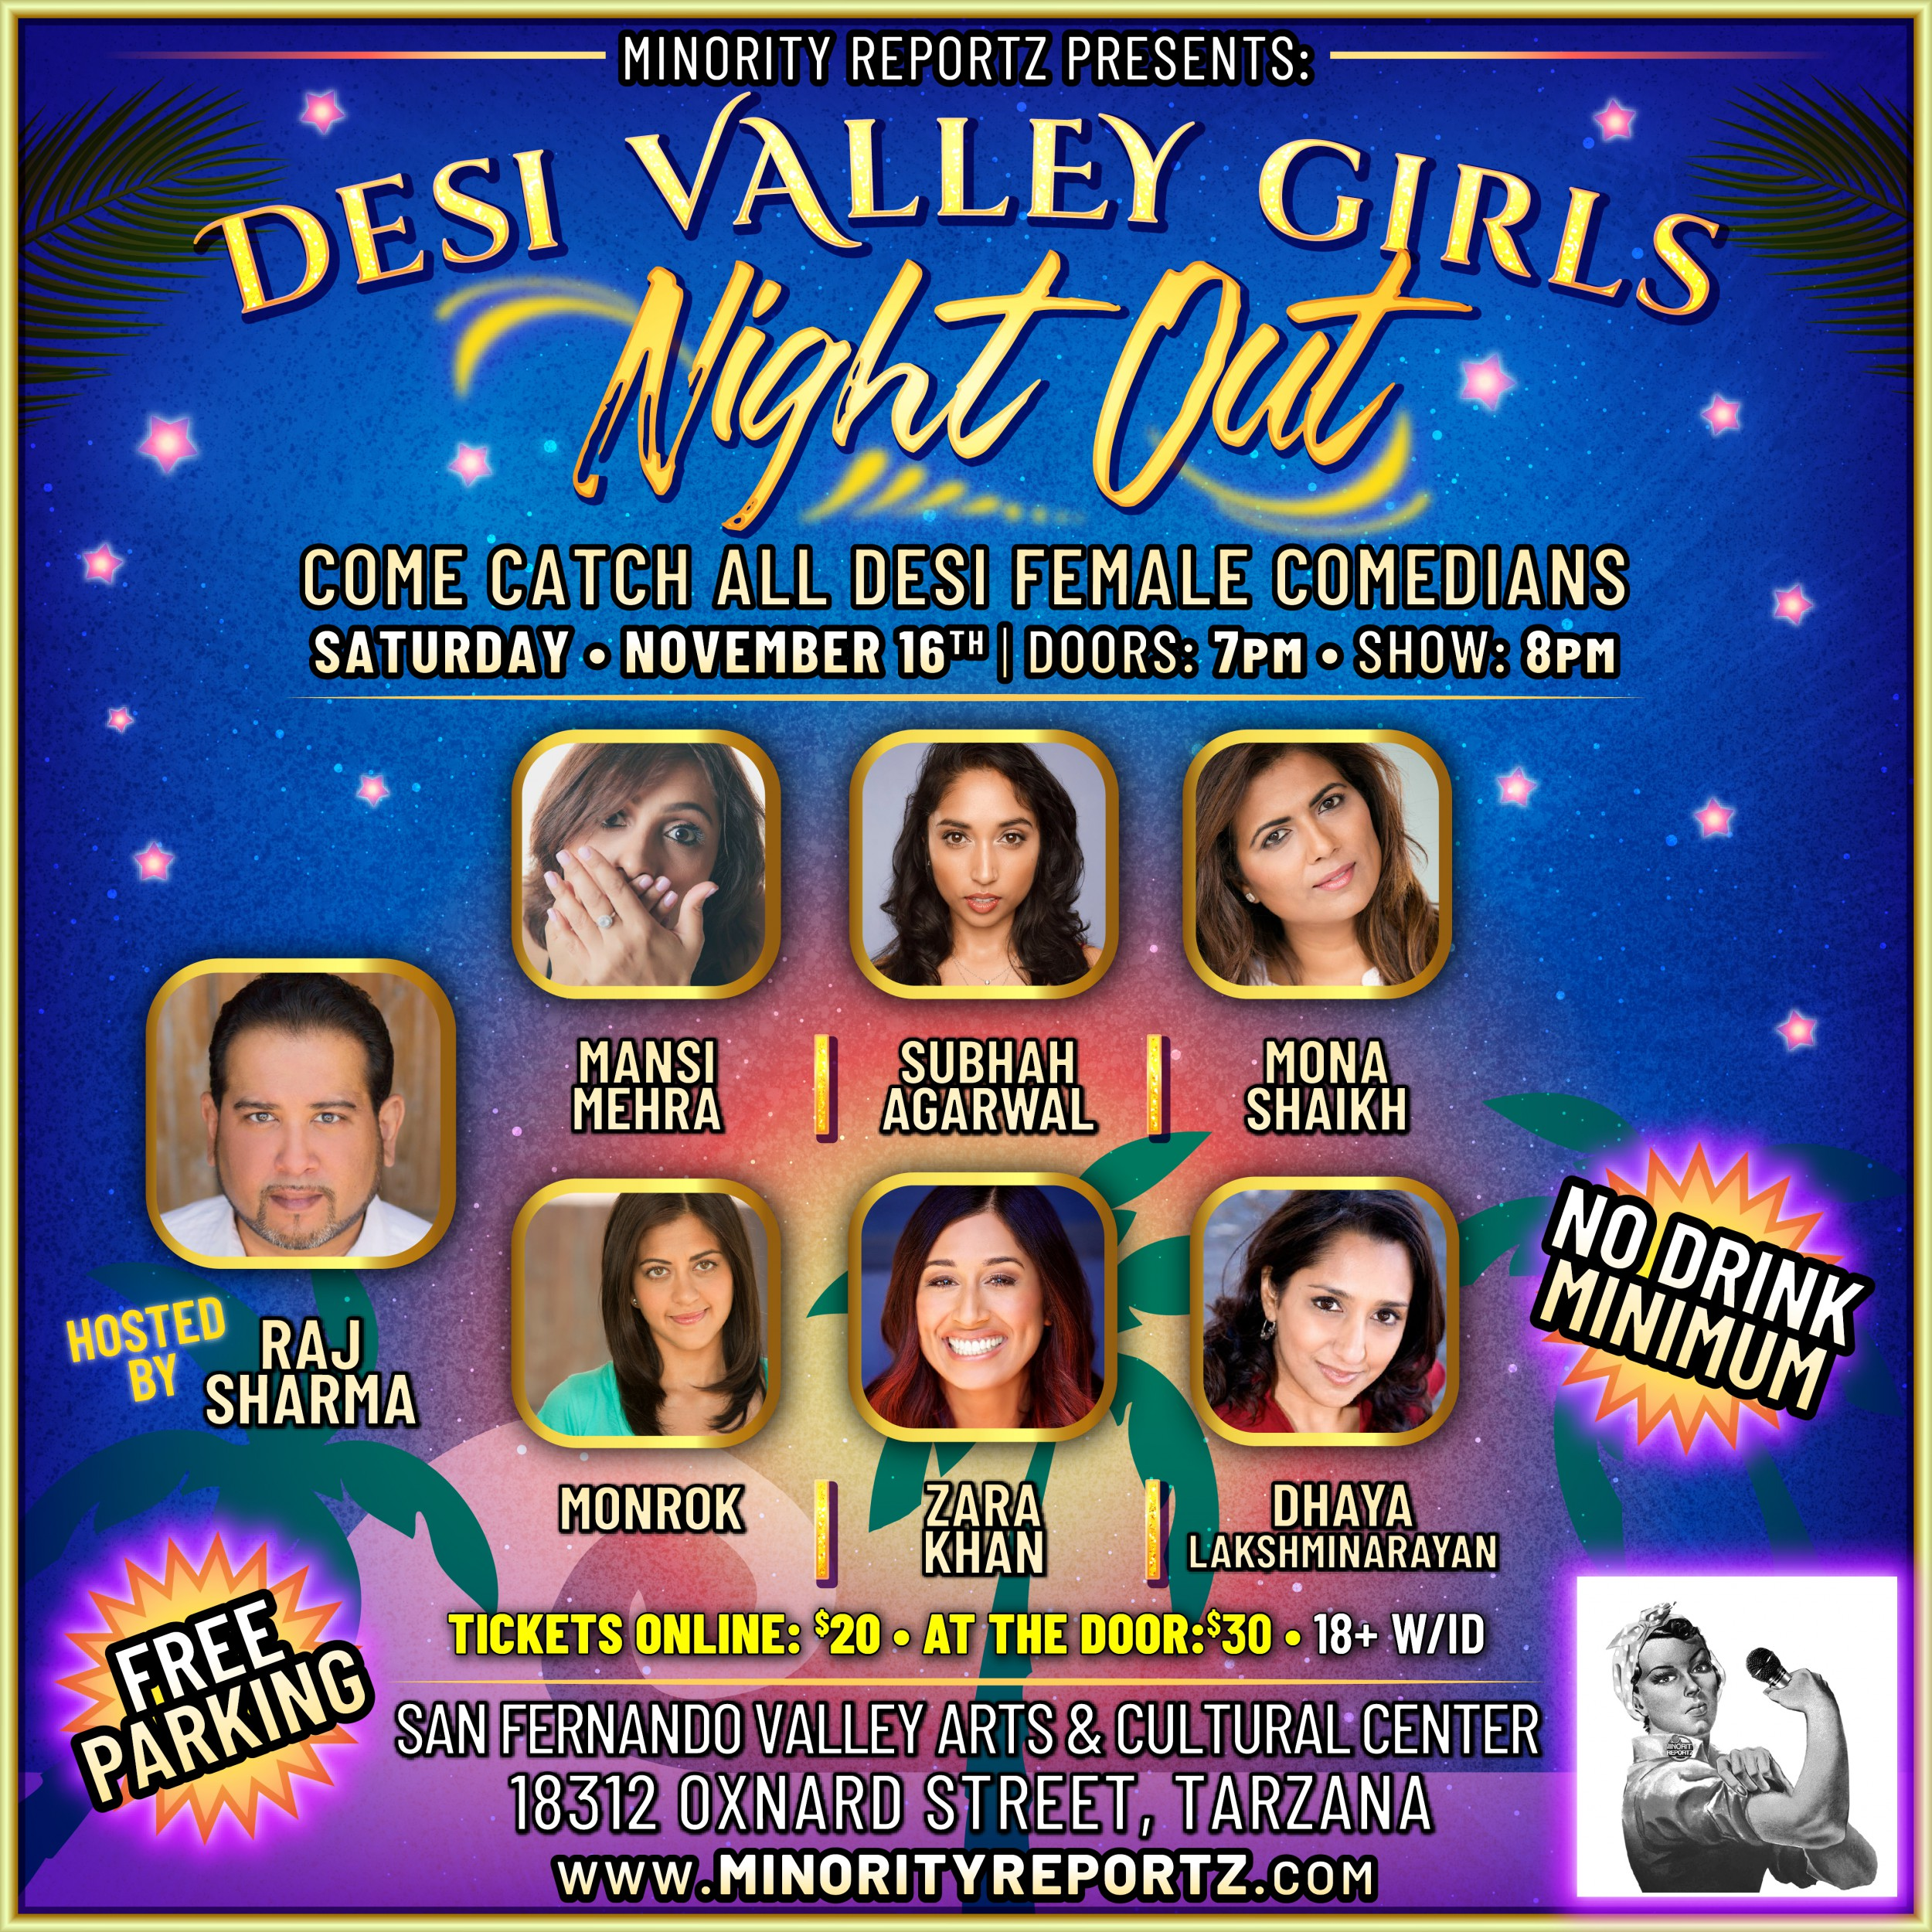 MINORITY REPORTZ PRESENTS DESI VALLEY GIRLS NIGHT OUT WITH  MONA SHAIKH (MINORITY REPORTZ PRODUCER), MANSI MEHRA (FLAPPERS COMEDY CLUB), SUBHAH AGARWAL (COMEDY CENTRAL), MONROK (CONAN) + MANY MORE